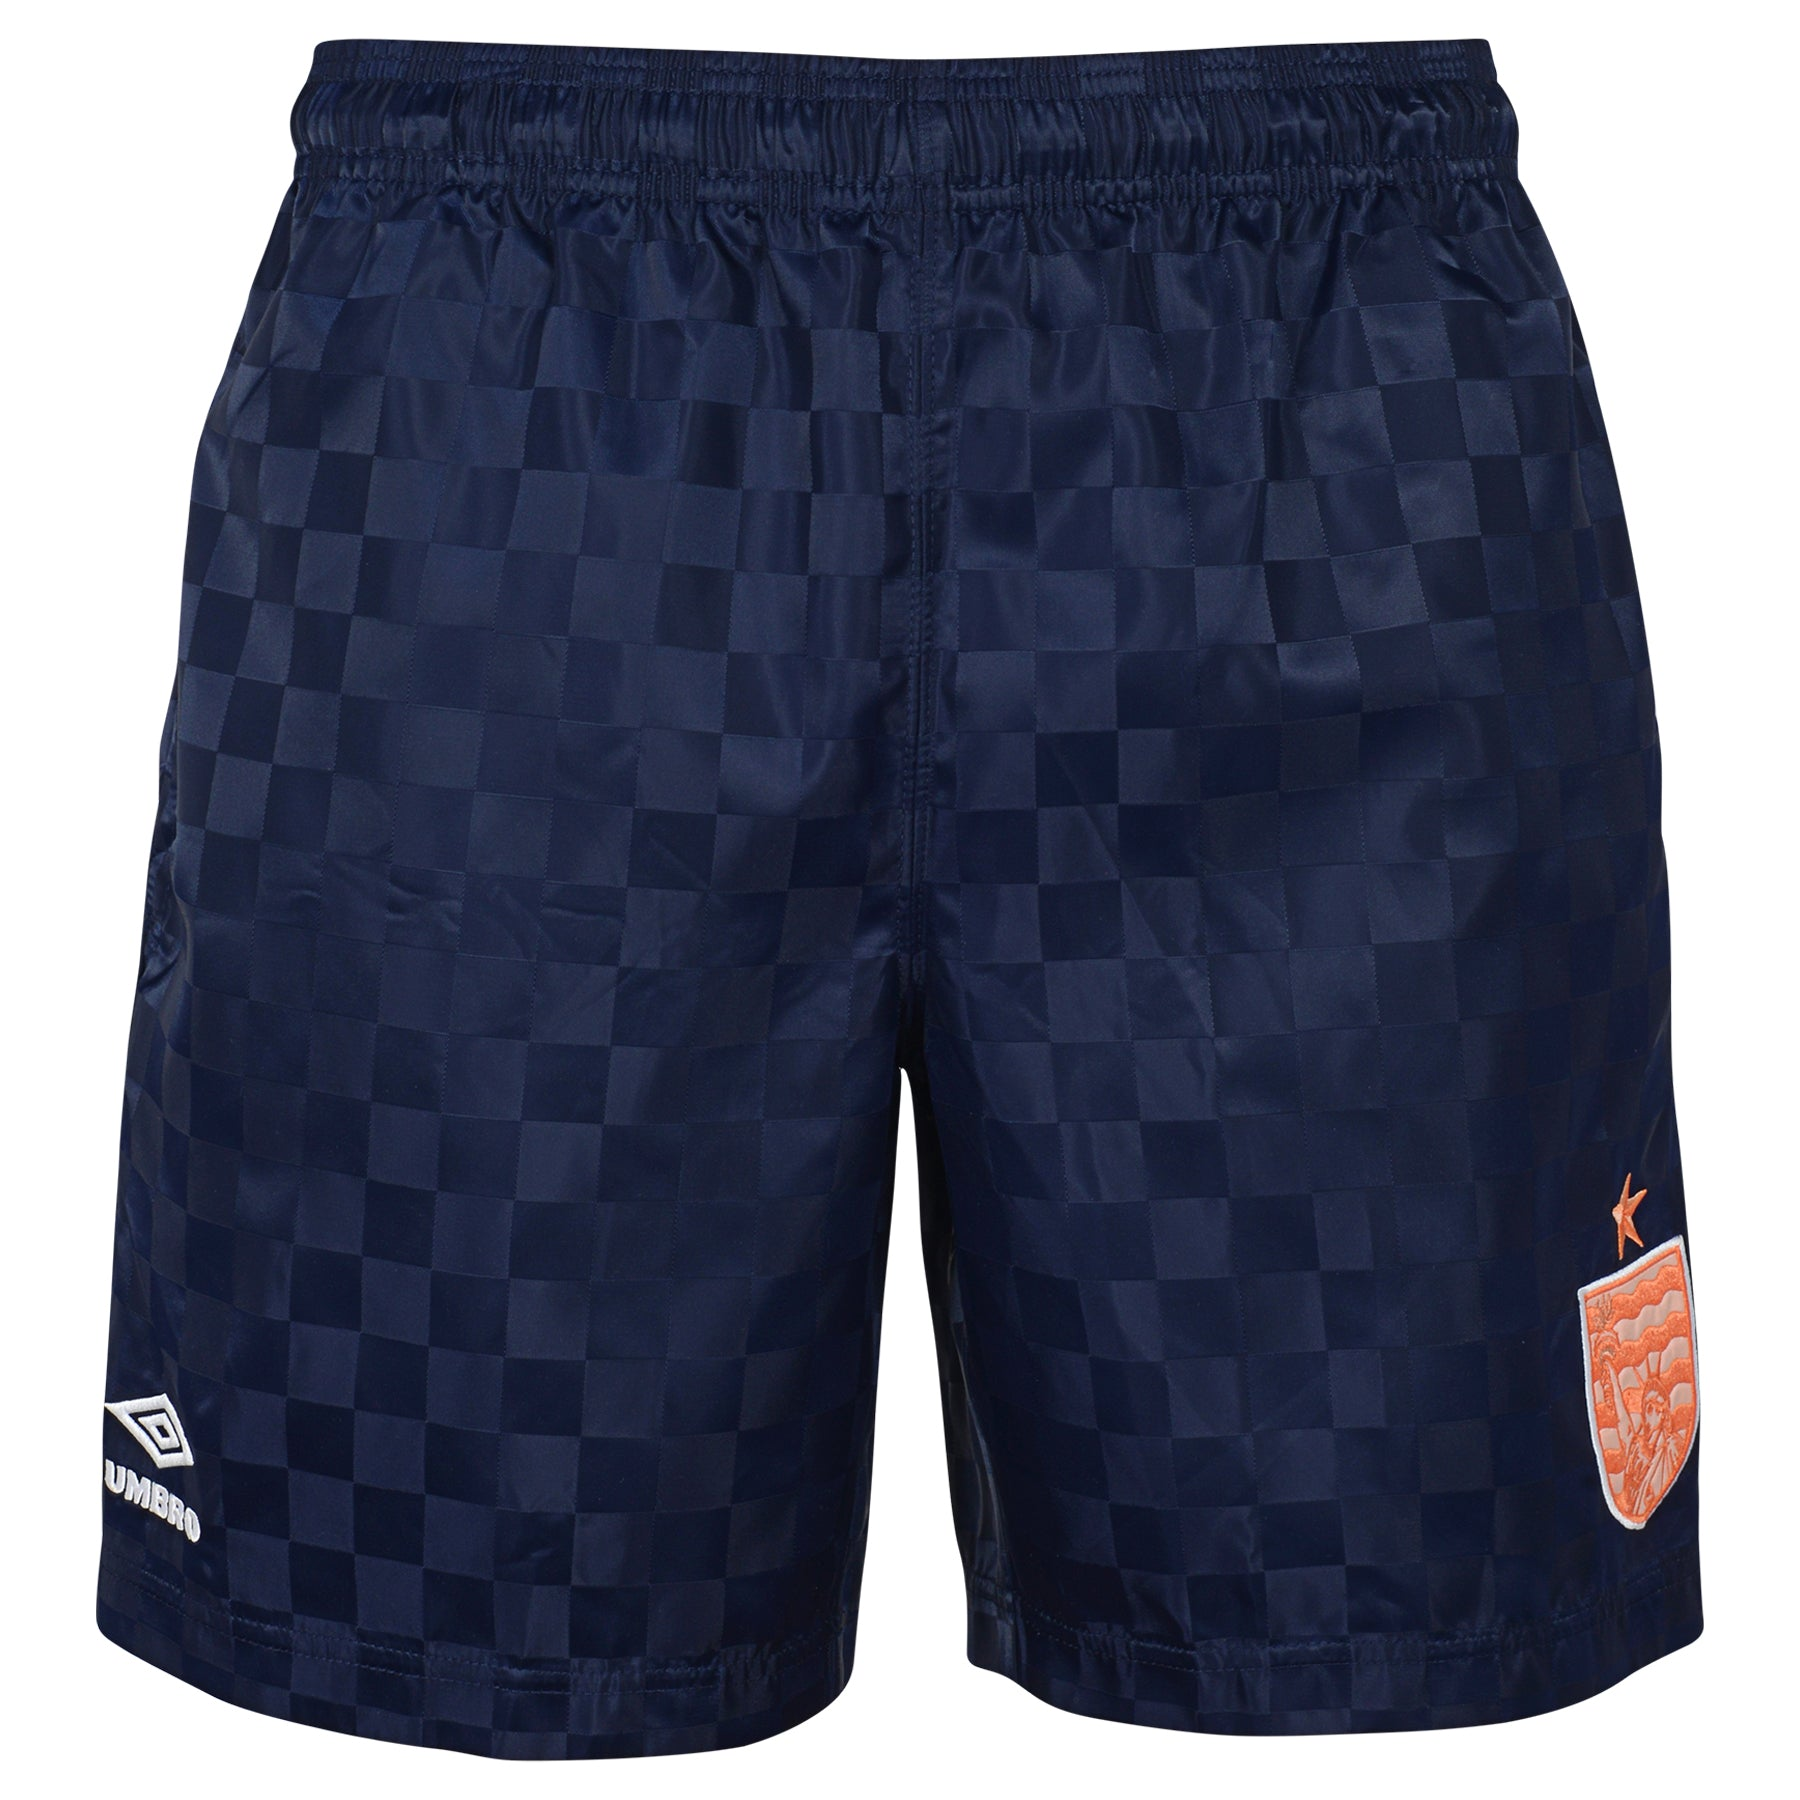 Coral Studios x Umbro Reversible Checkerboard Short